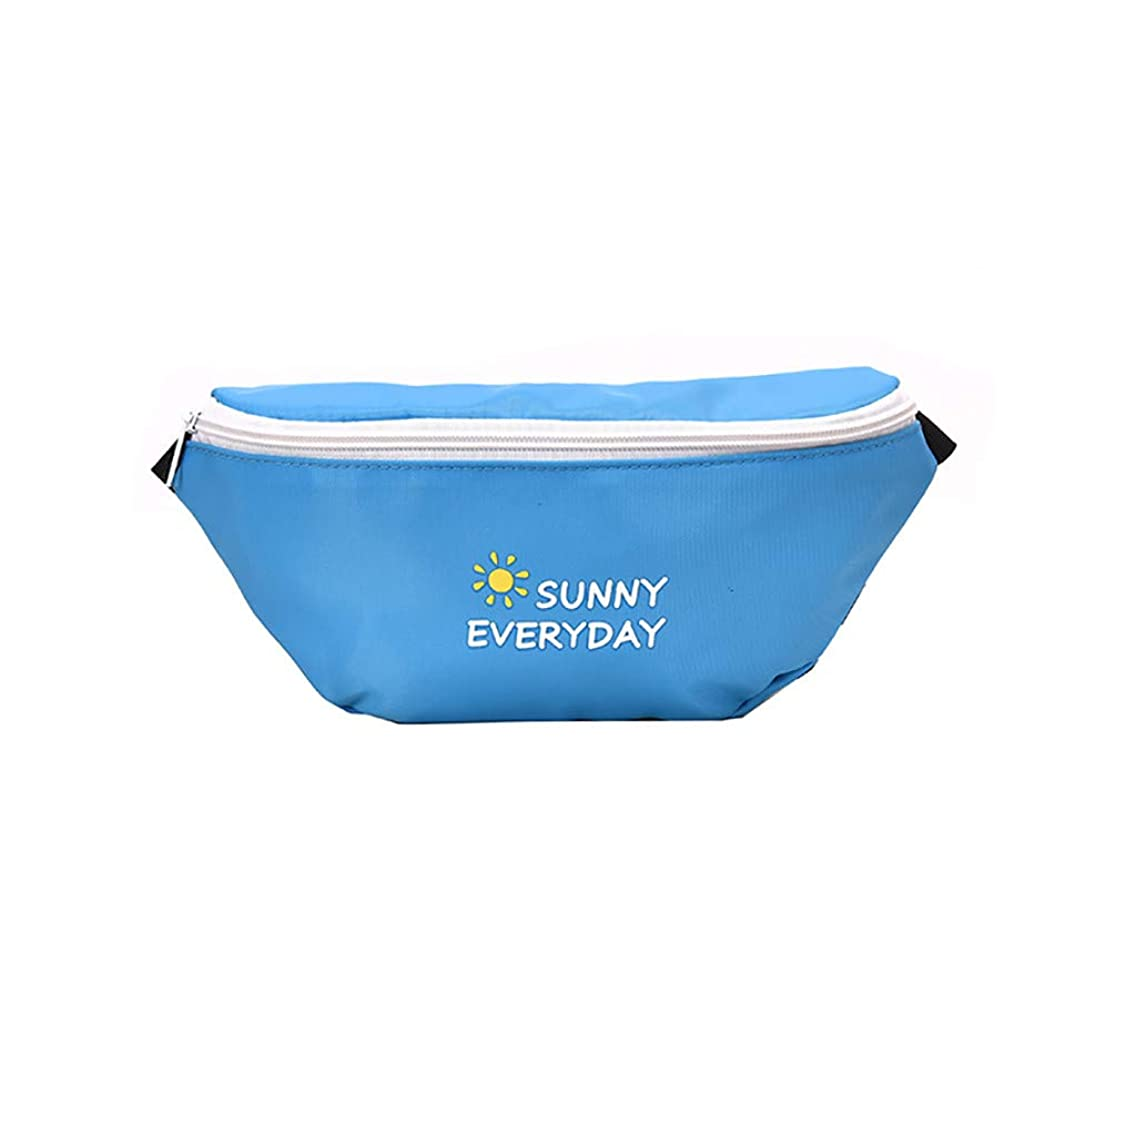 justHIGH's Bags Fanny Pack,Casual Shoulder Travel Sport Biking Hiking Outdoor Daypack Chest Bag for Men & Women